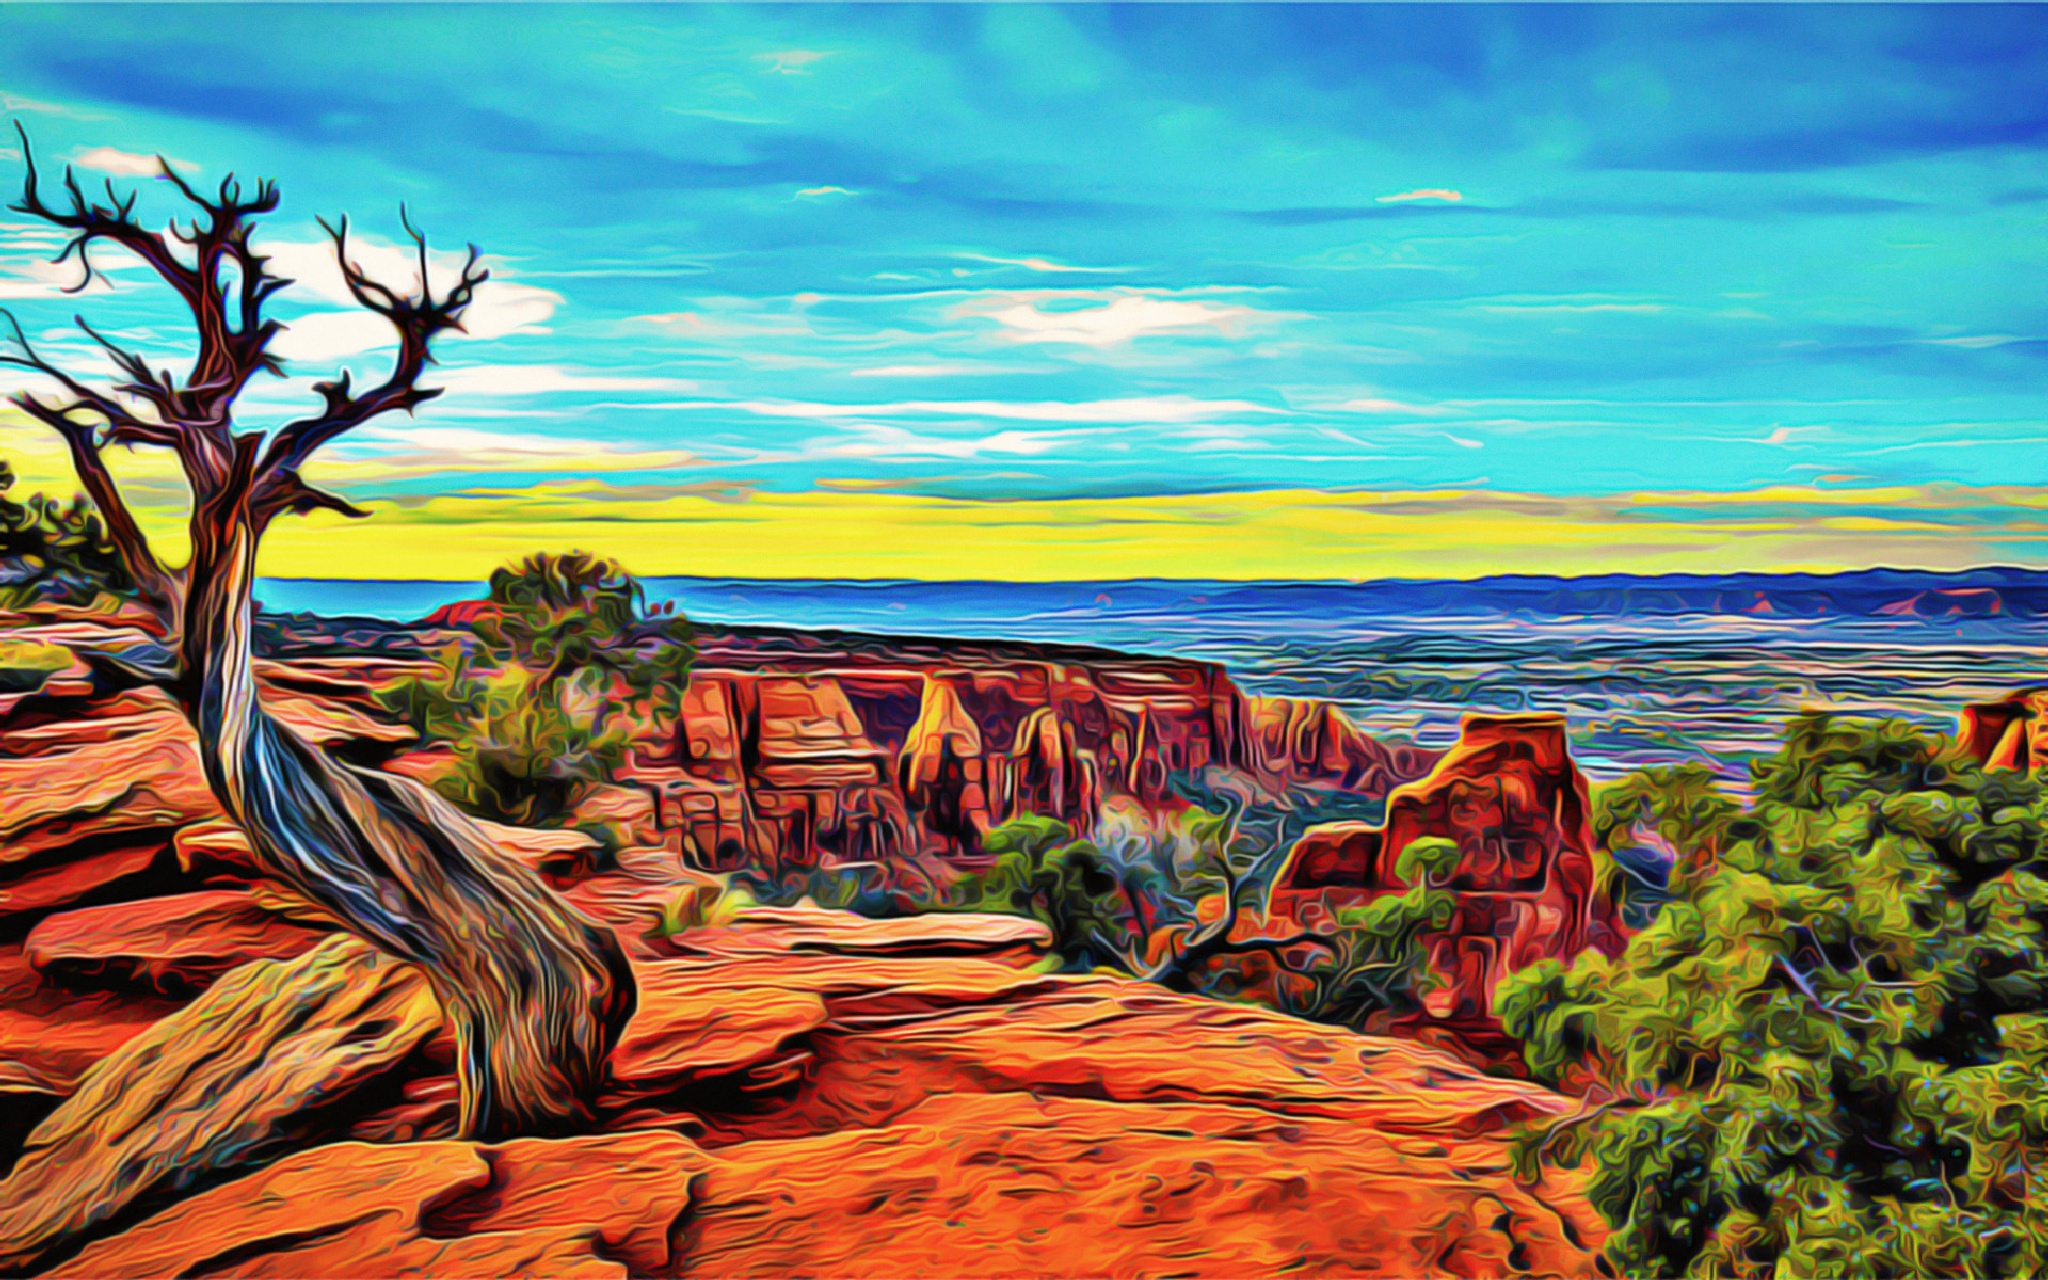 Grand Canyon by zertium